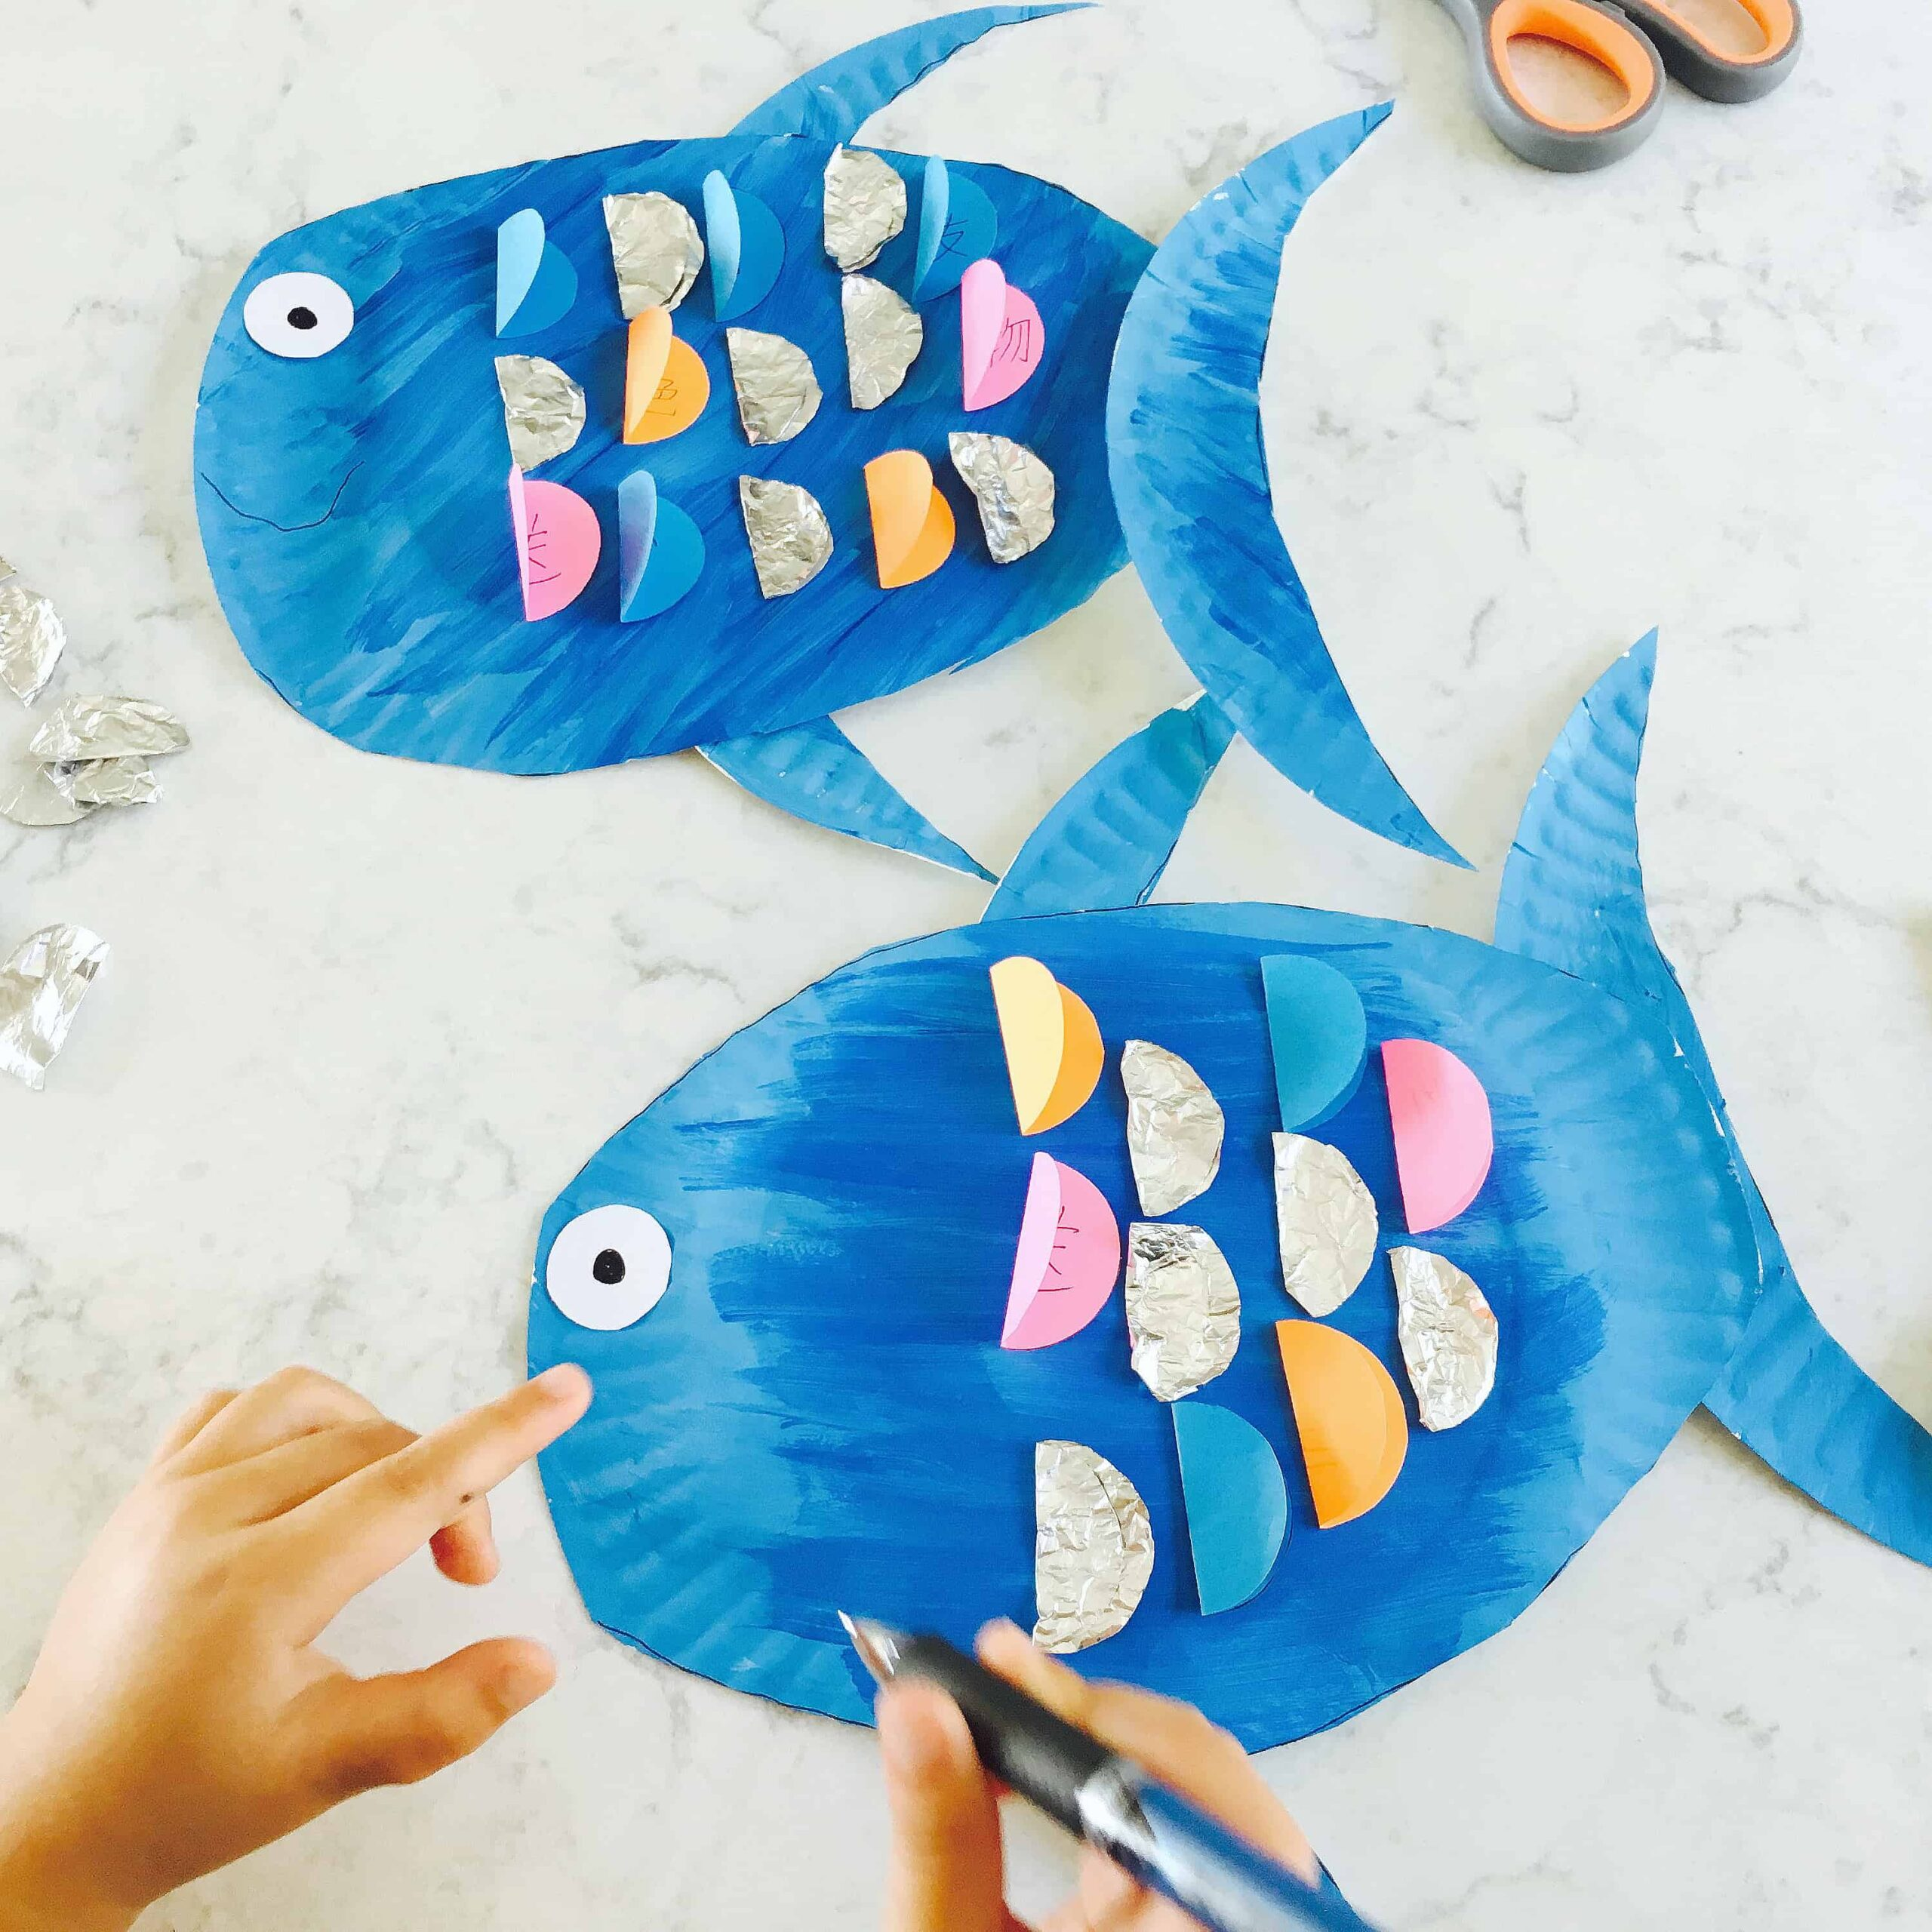 Paper Plate Rainbow Fish Craft – Book-Based Literacy Activity (VIDEO)